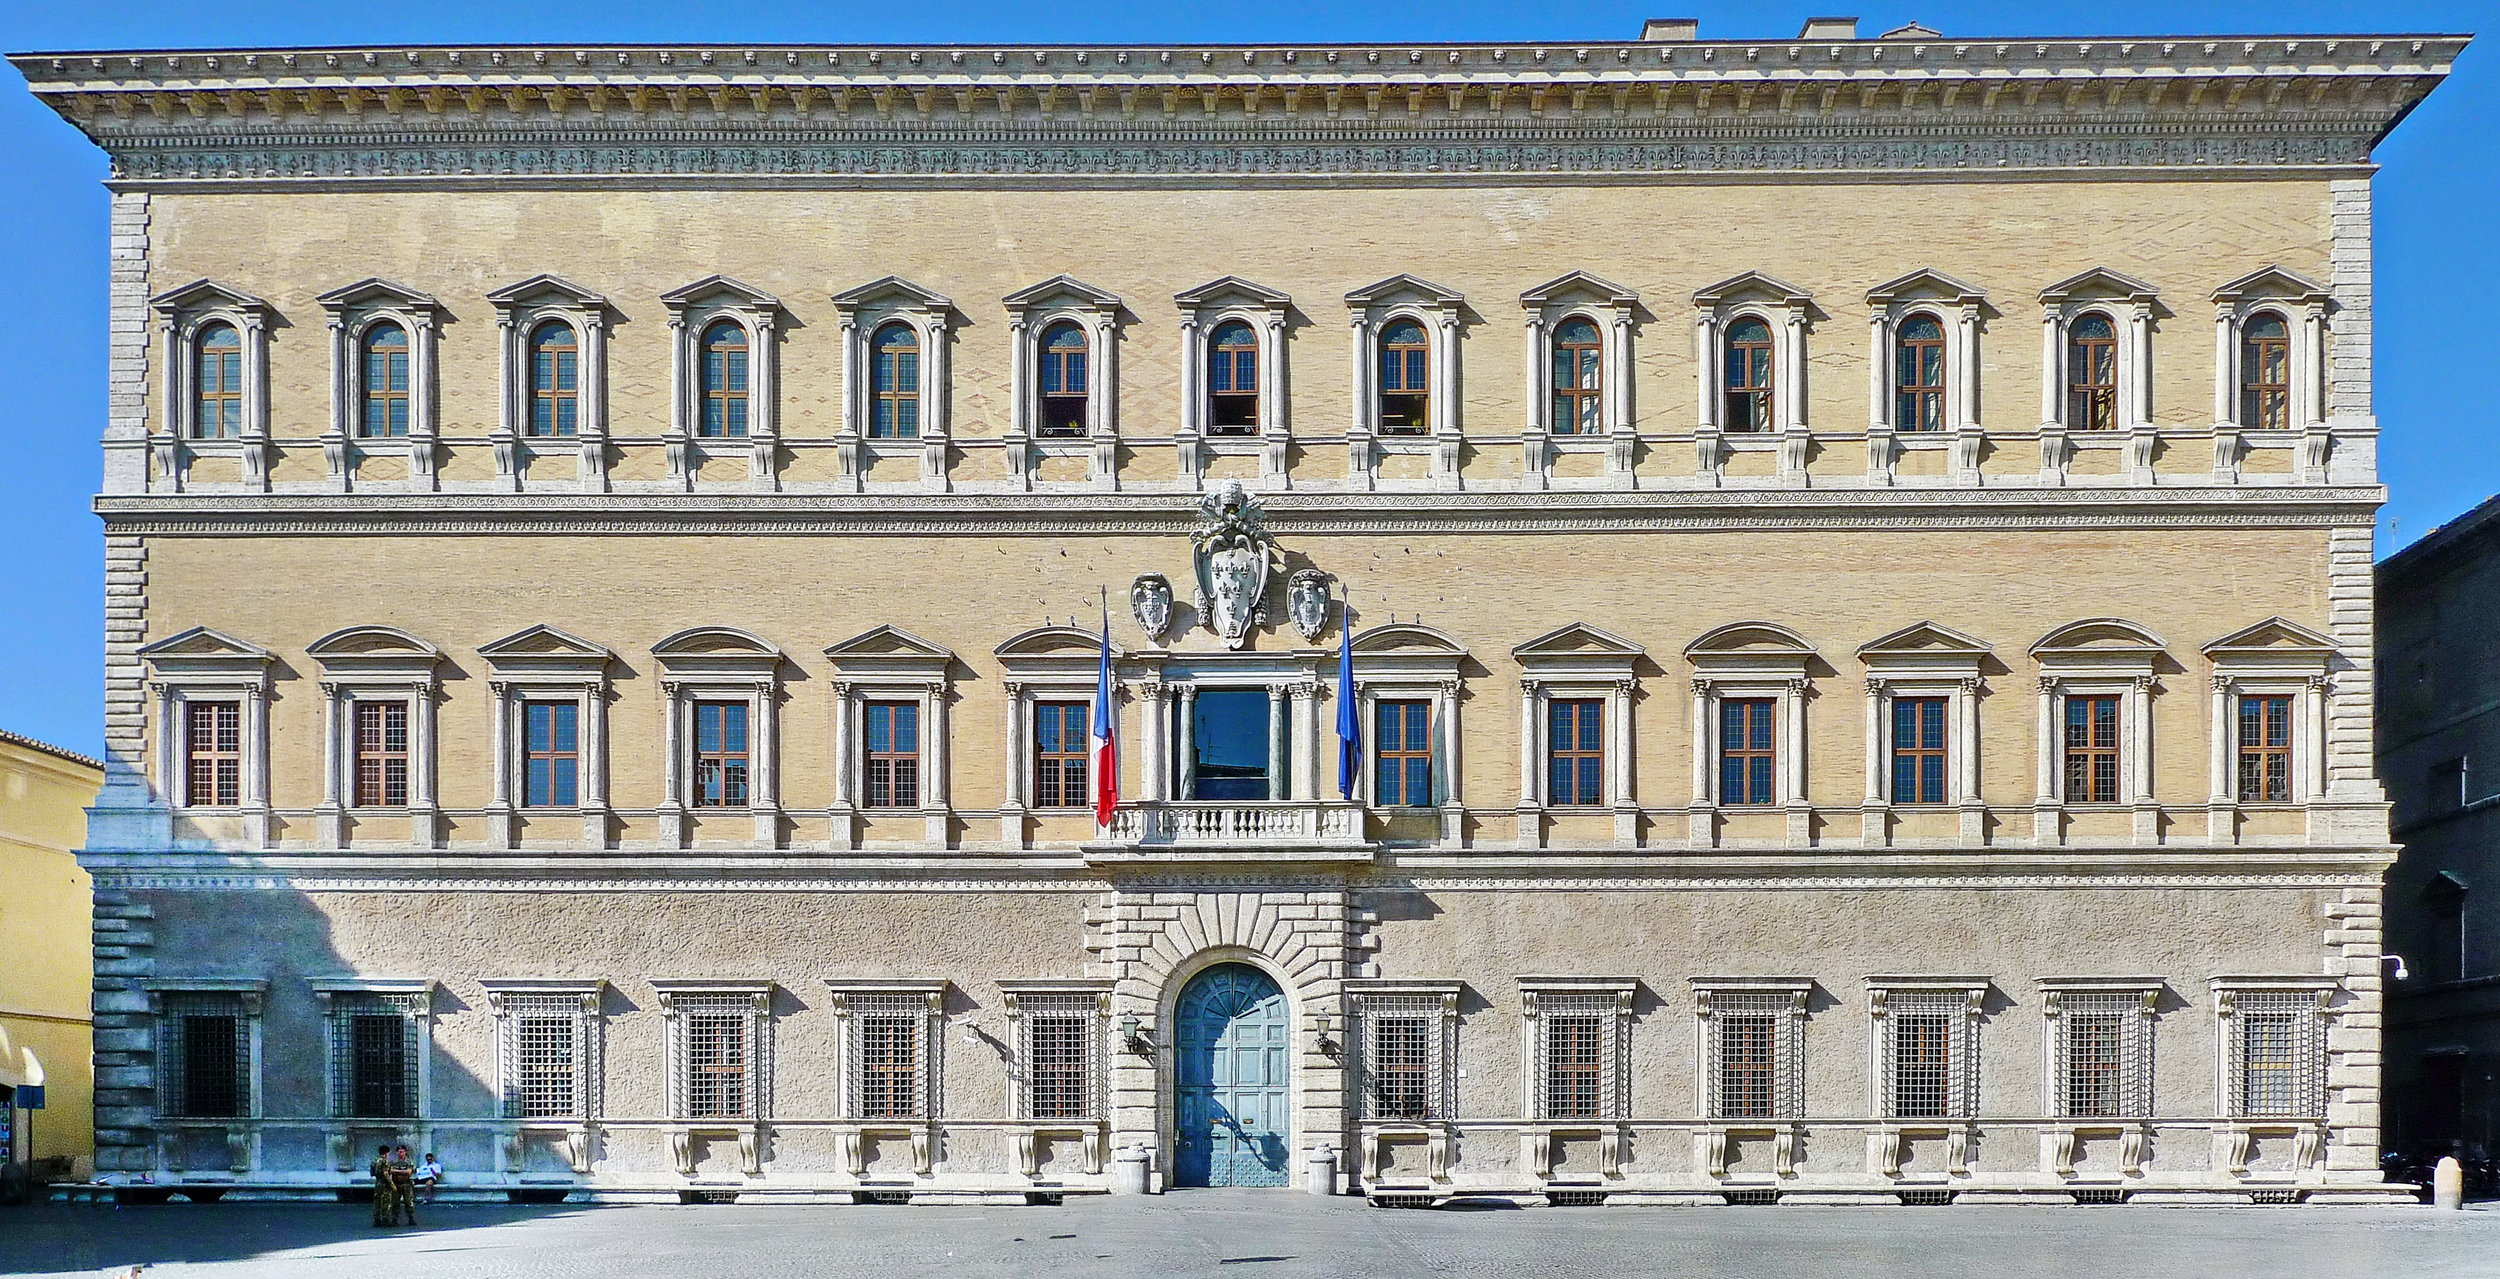 The Palazzo Farnese in Rome. Aldo Rossi drew inspiration from this facade for the Quartier Schützenstraße in Berlin. Photo Credit:  Creative Commons